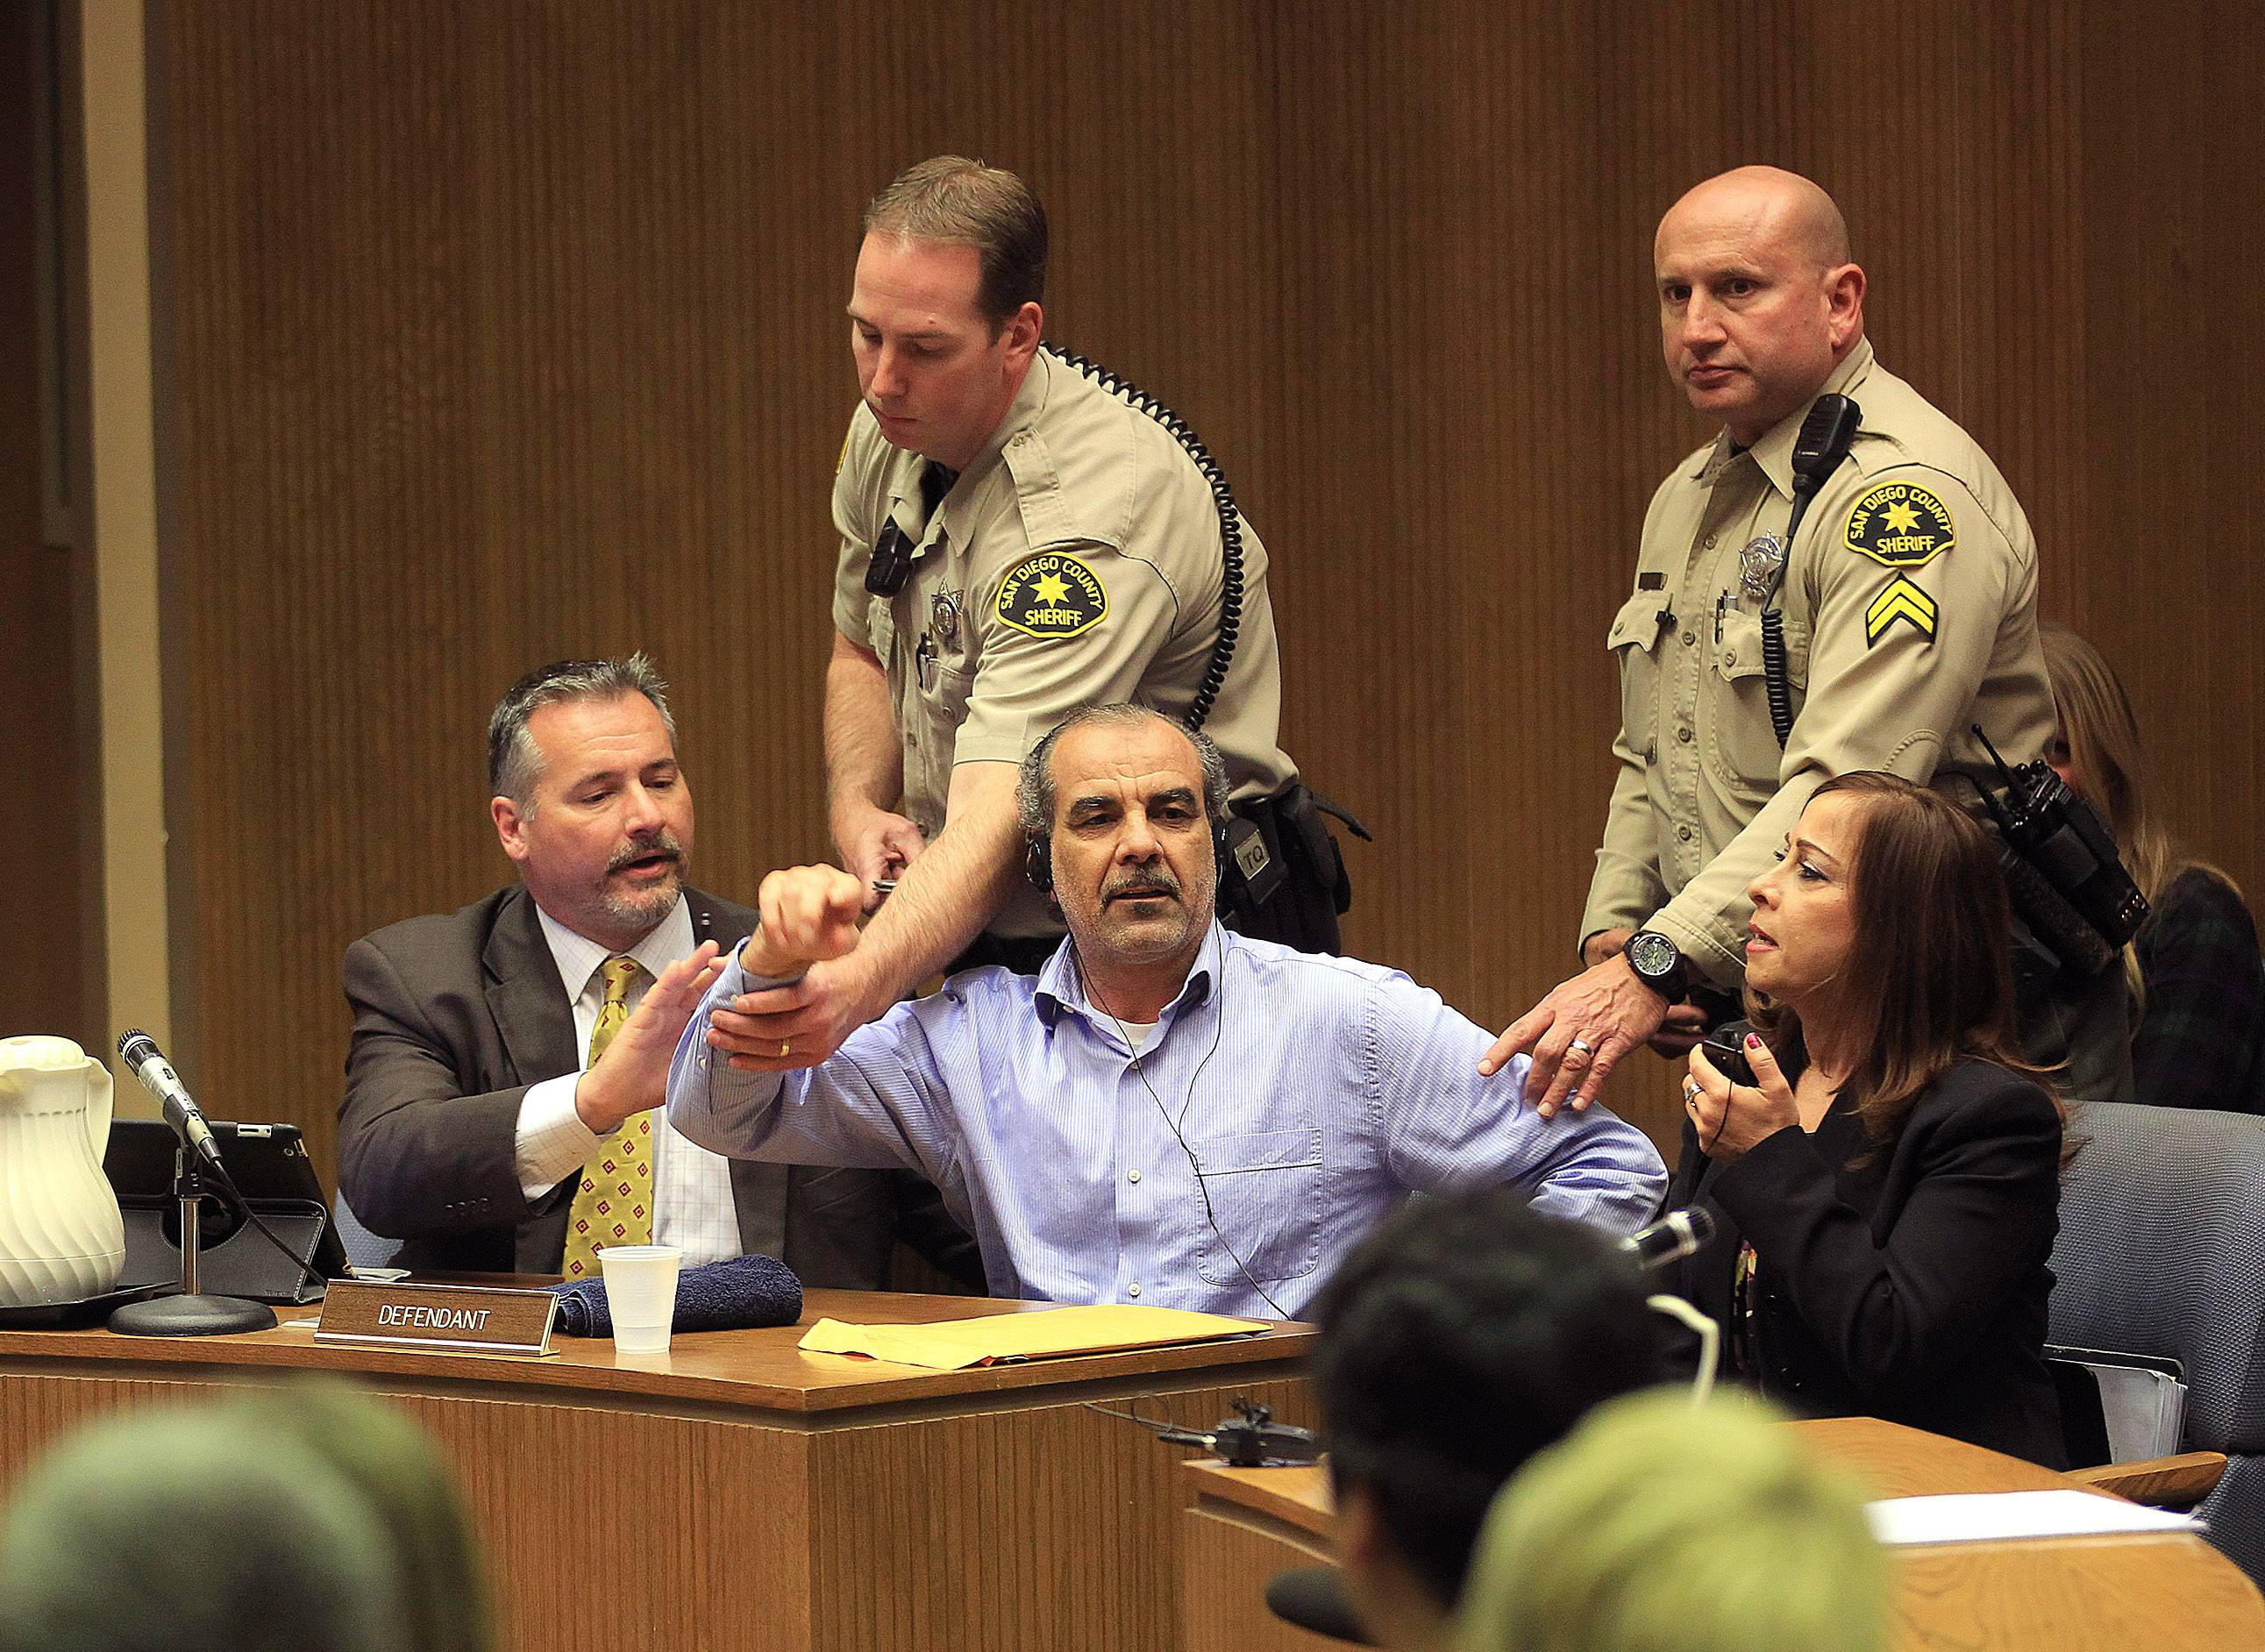 Murder suspect Kassim Alhimidi reacts to being found guilty for the murder of his wife Shaima Alawadi, Thursday April 17, 2014. Alhimidi shook his head as the verdict was read Thursday. He was charged with murdering his 32-year-old wife, Shaima Alawadi, in El Cajon, home to one of the largest enclaves of Iraqi immigrants in the U.S.